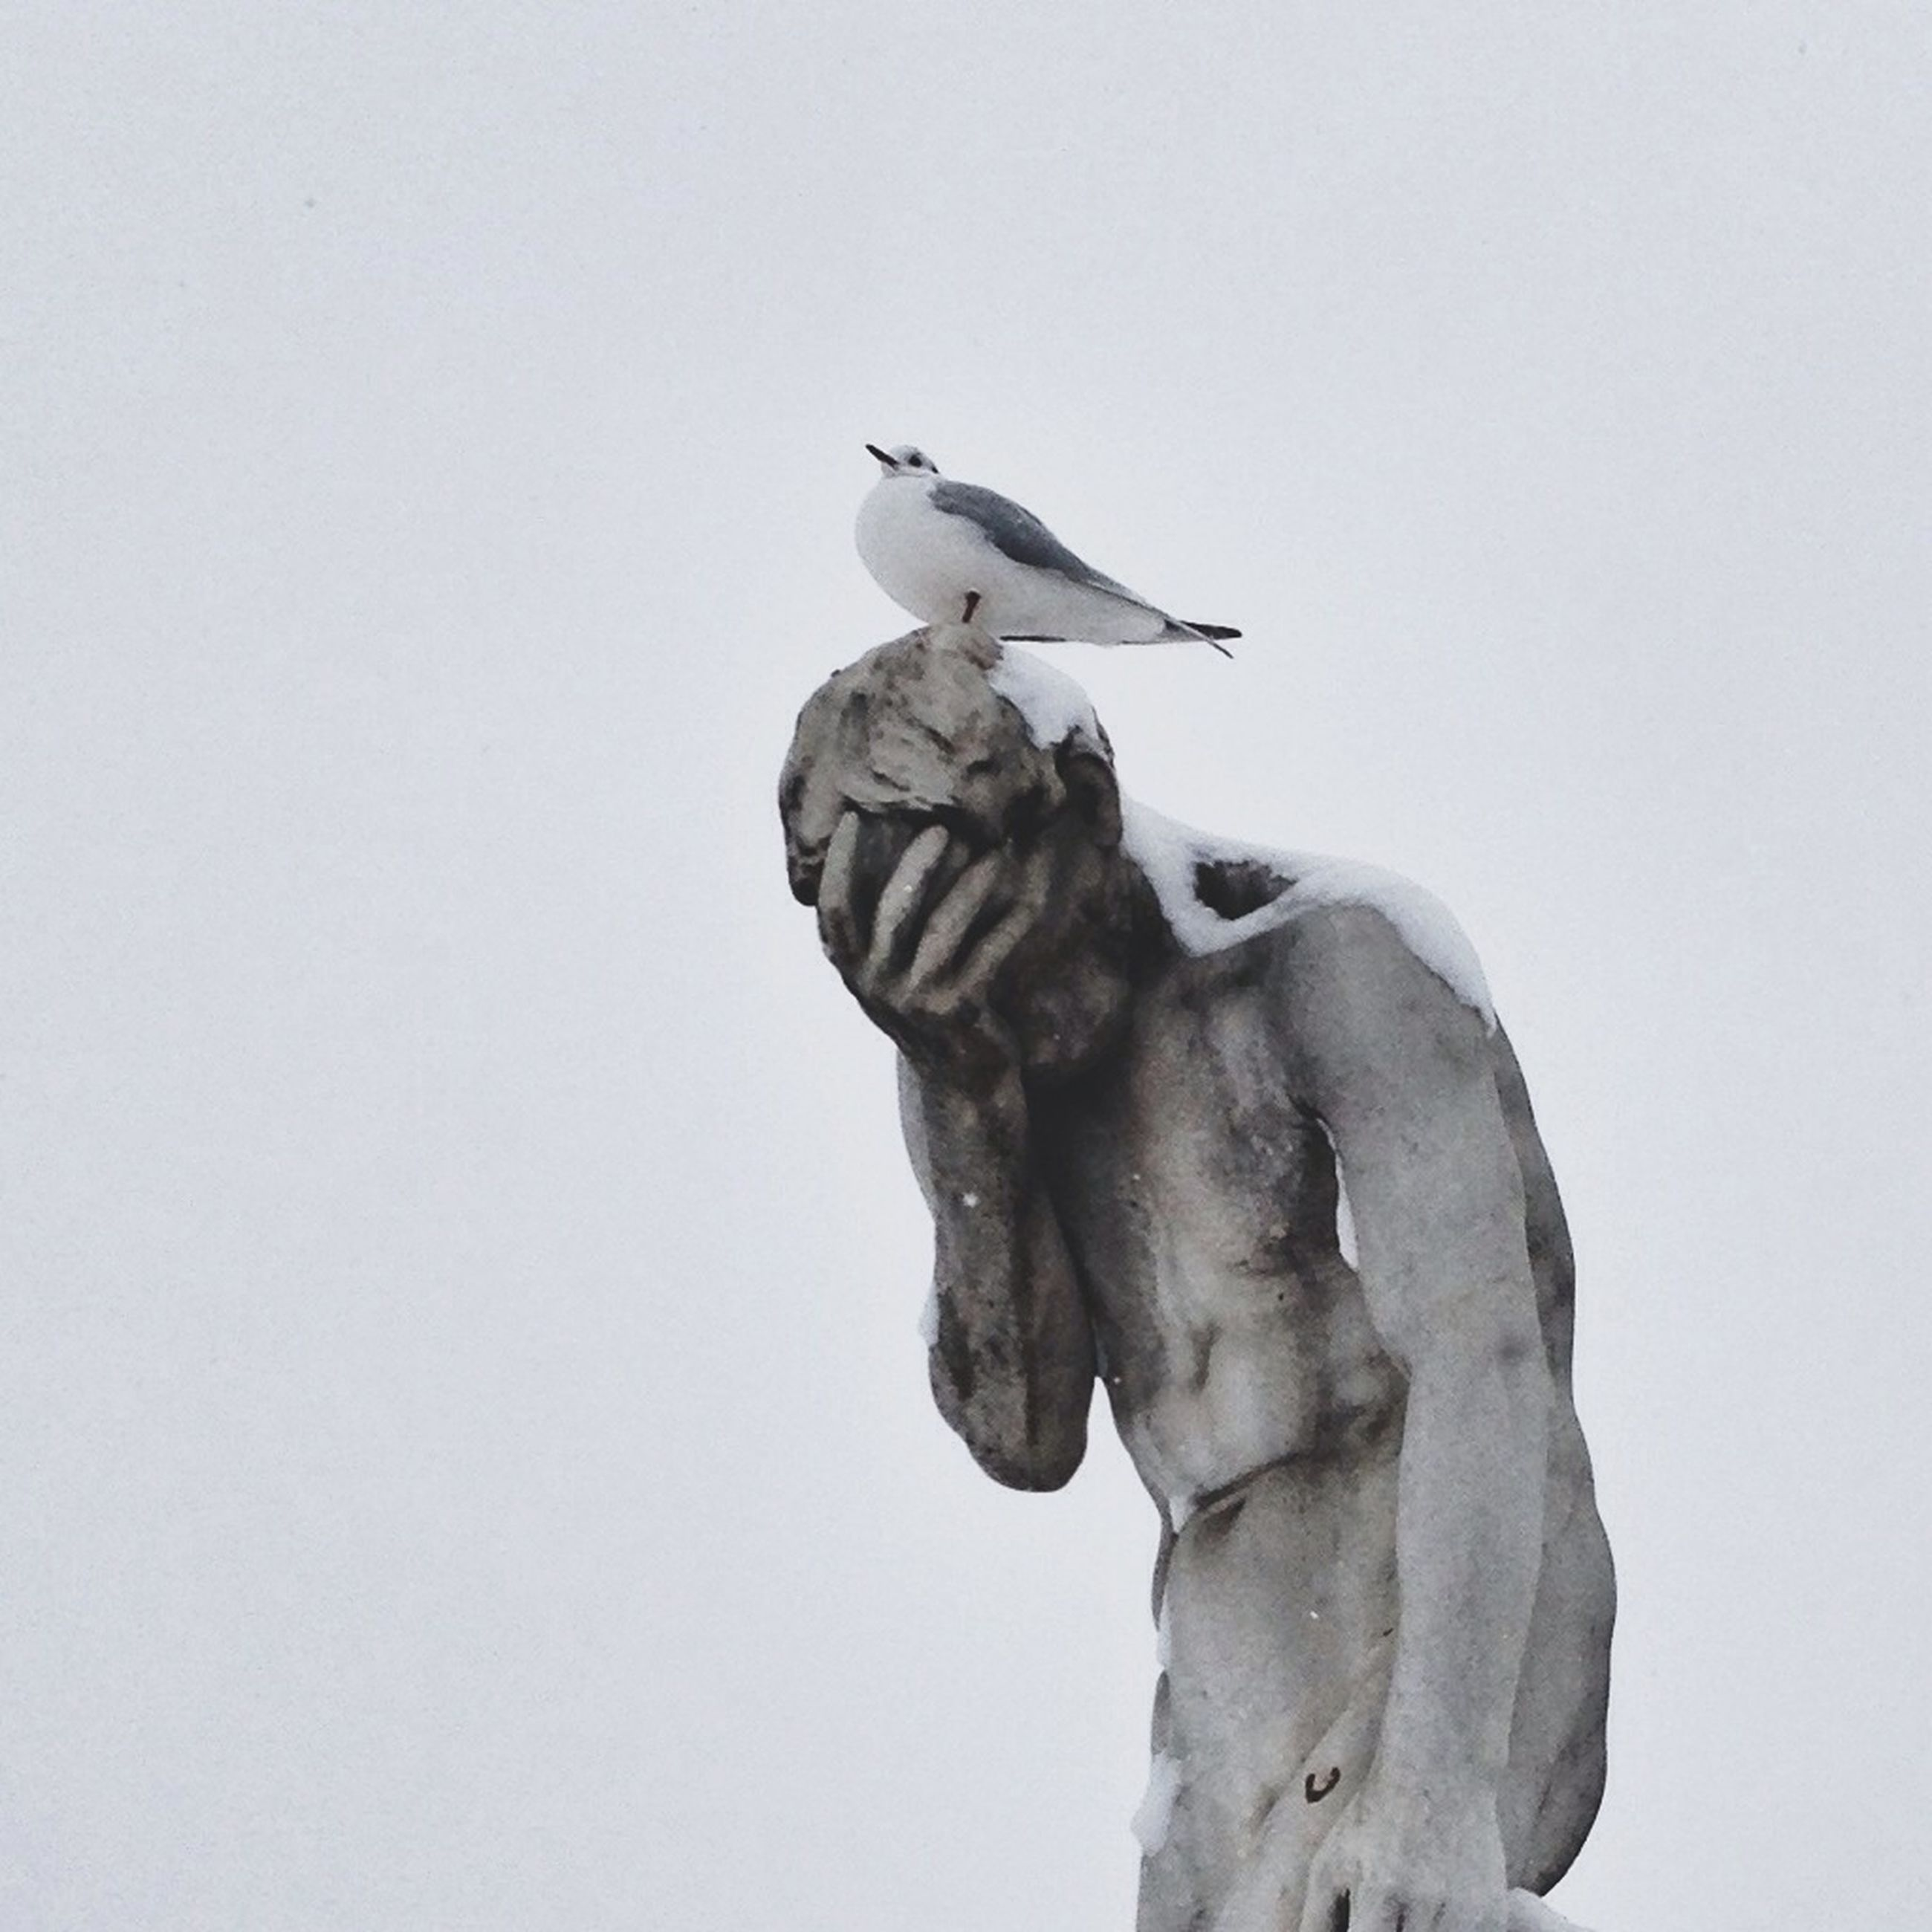 clear sky, animal themes, low angle view, bird, animals in the wild, wildlife, statue, copy space, sculpture, human representation, one animal, art, art and craft, perching, day, no people, outdoors, creativity, two animals